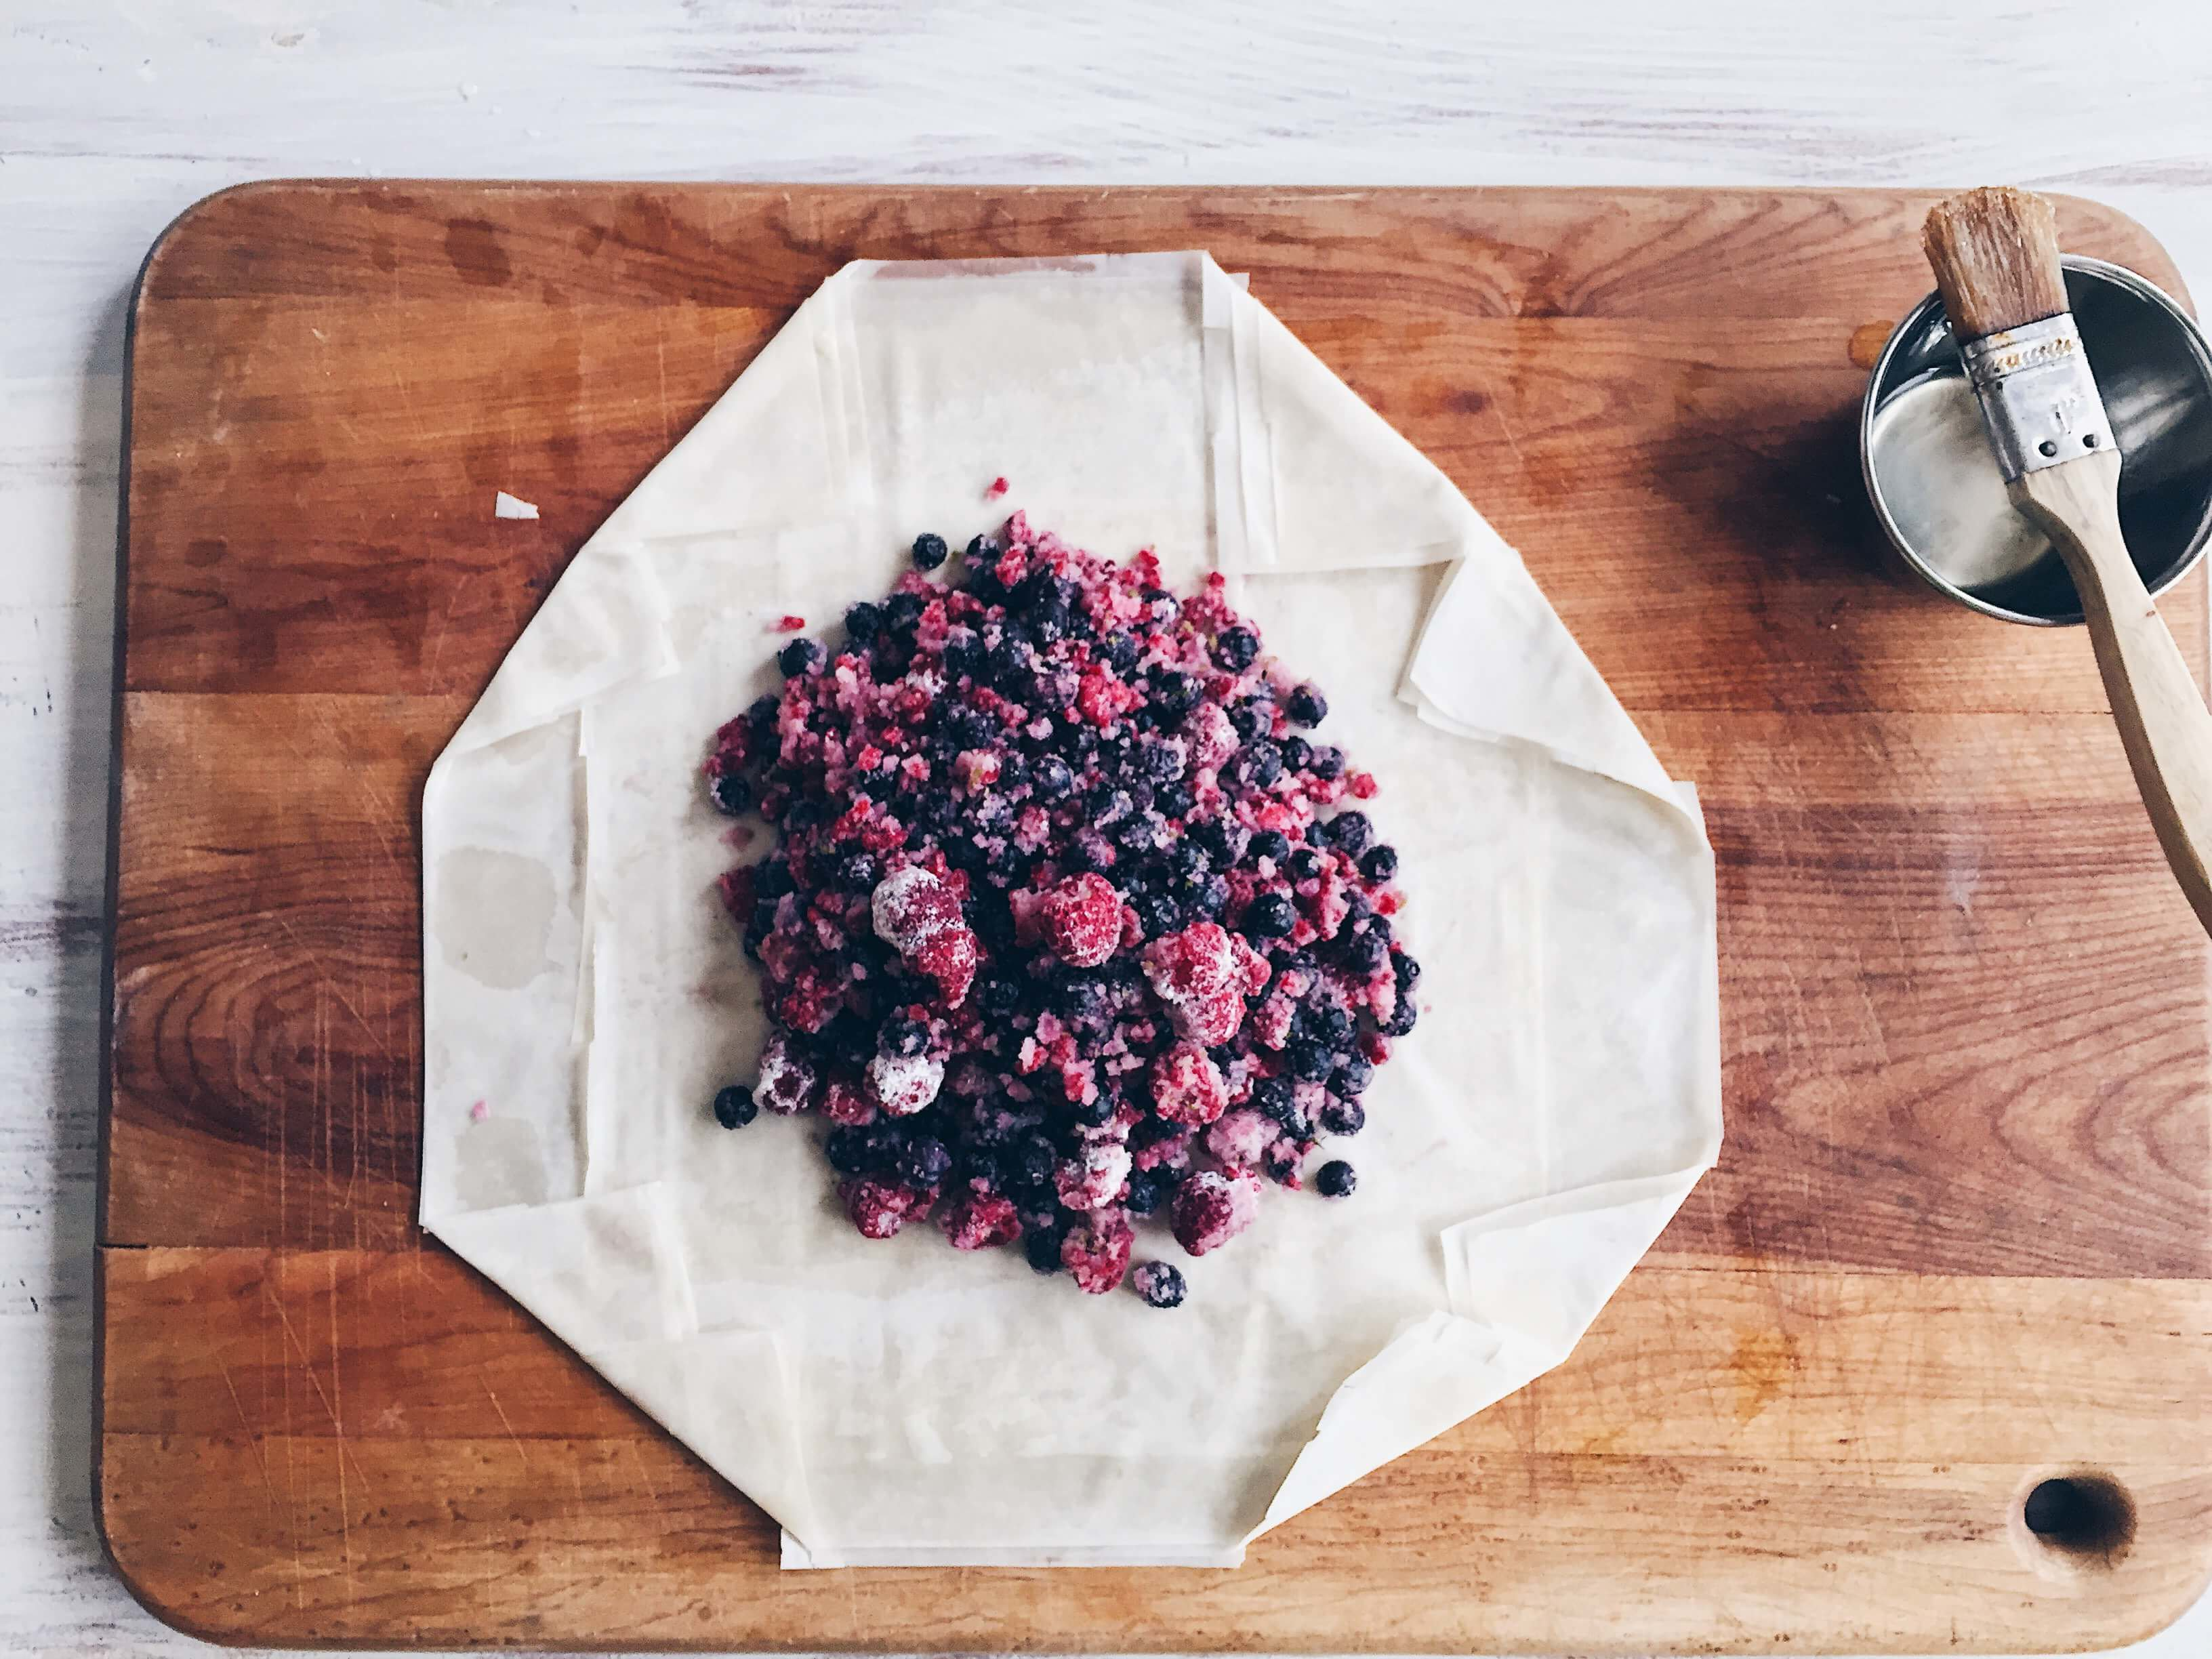 Mixed Berry Phyllo Galette with folded corners by The Messy Baker